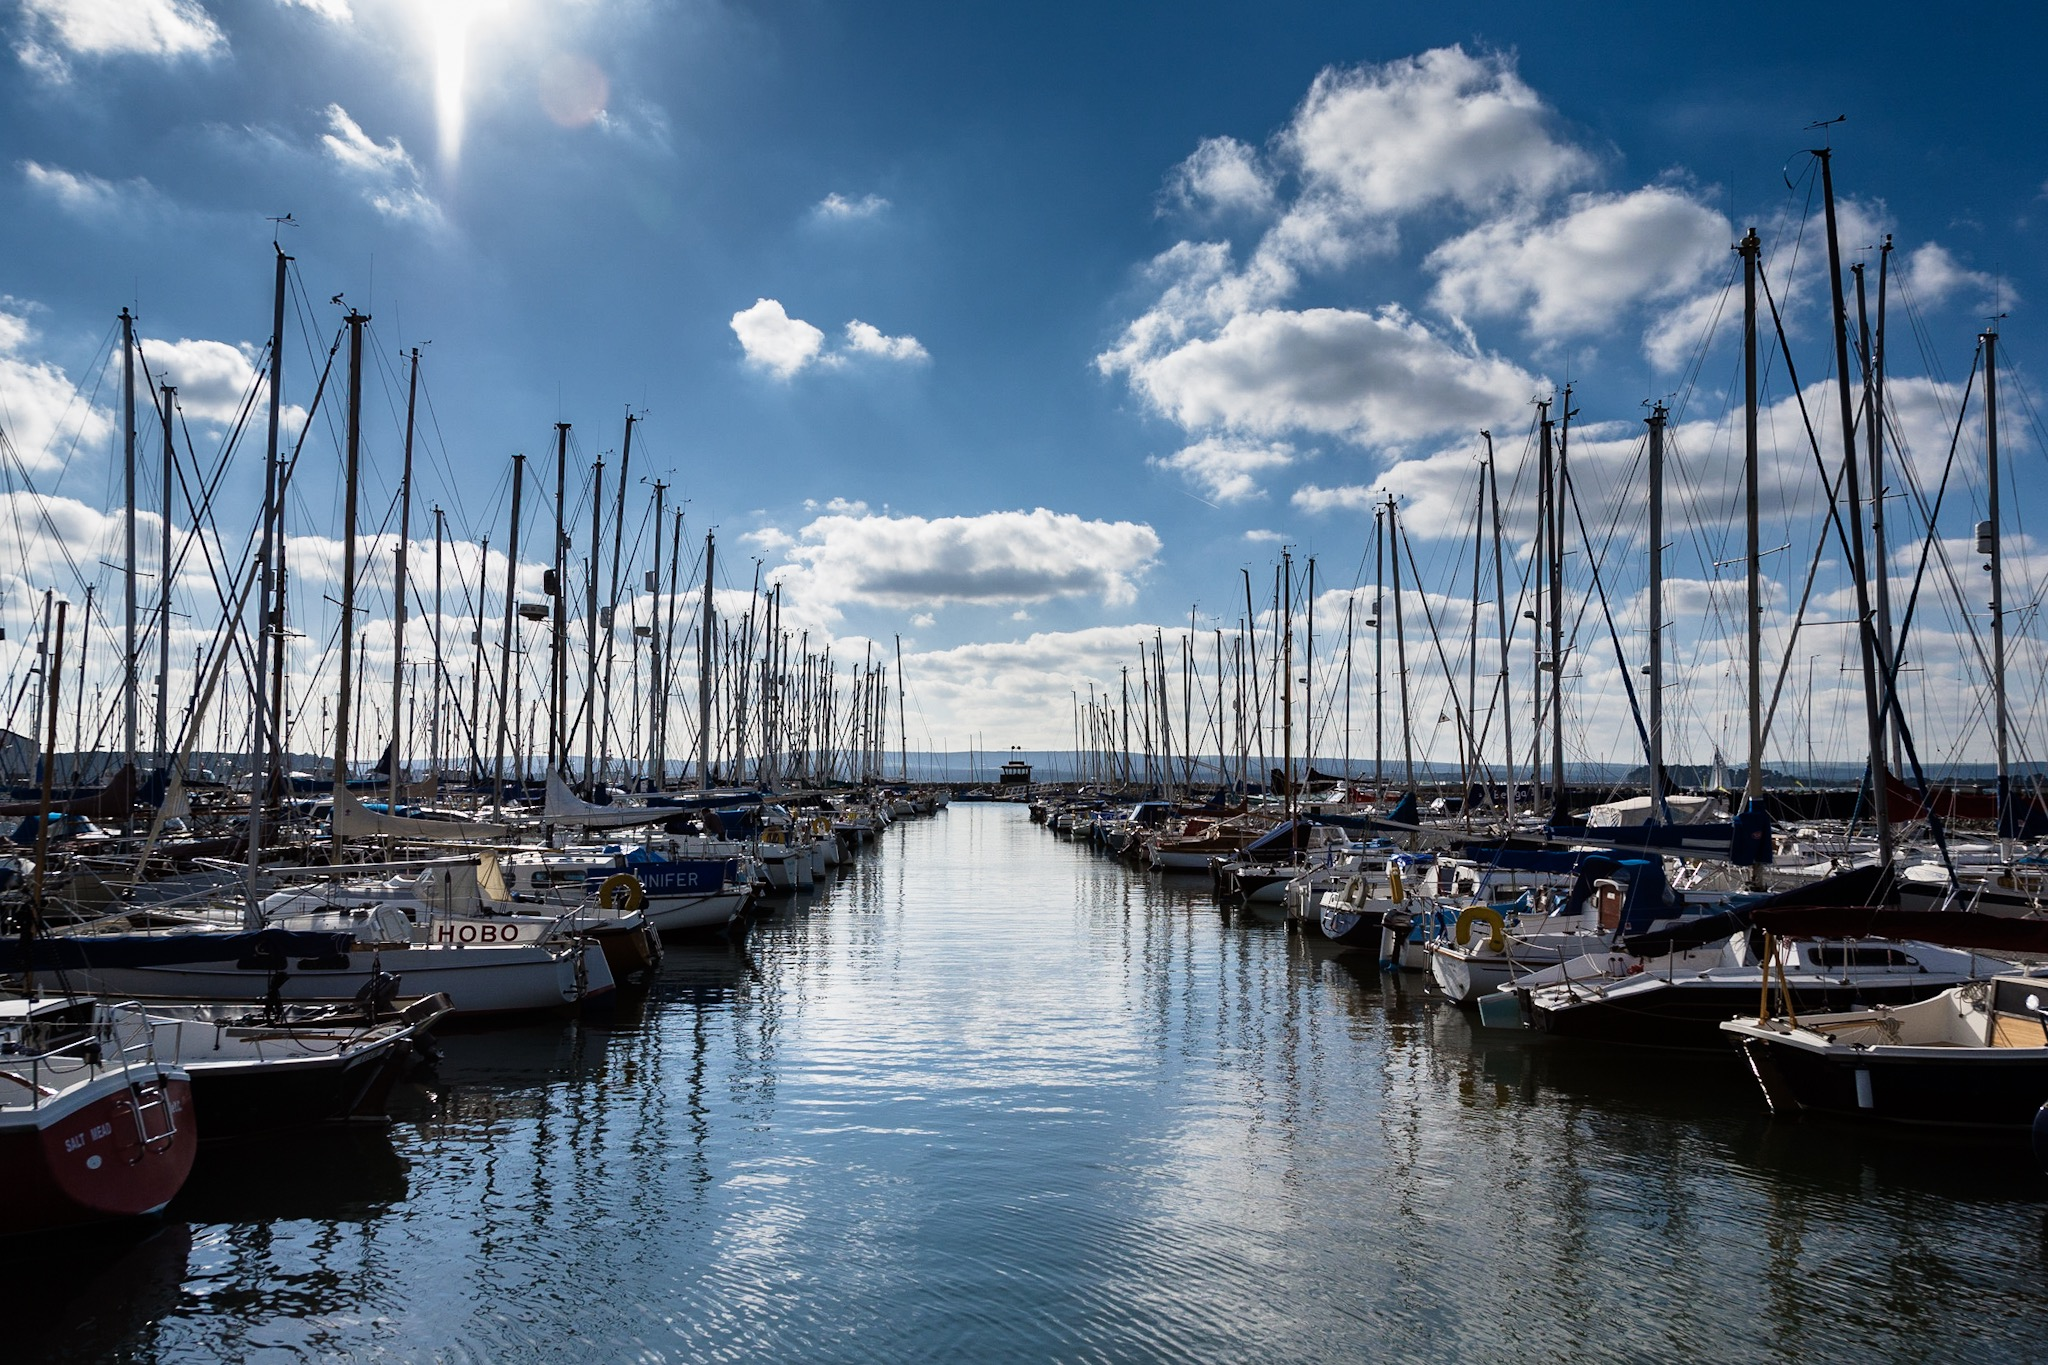 Boats at Poole Yacht Club in the sunshine